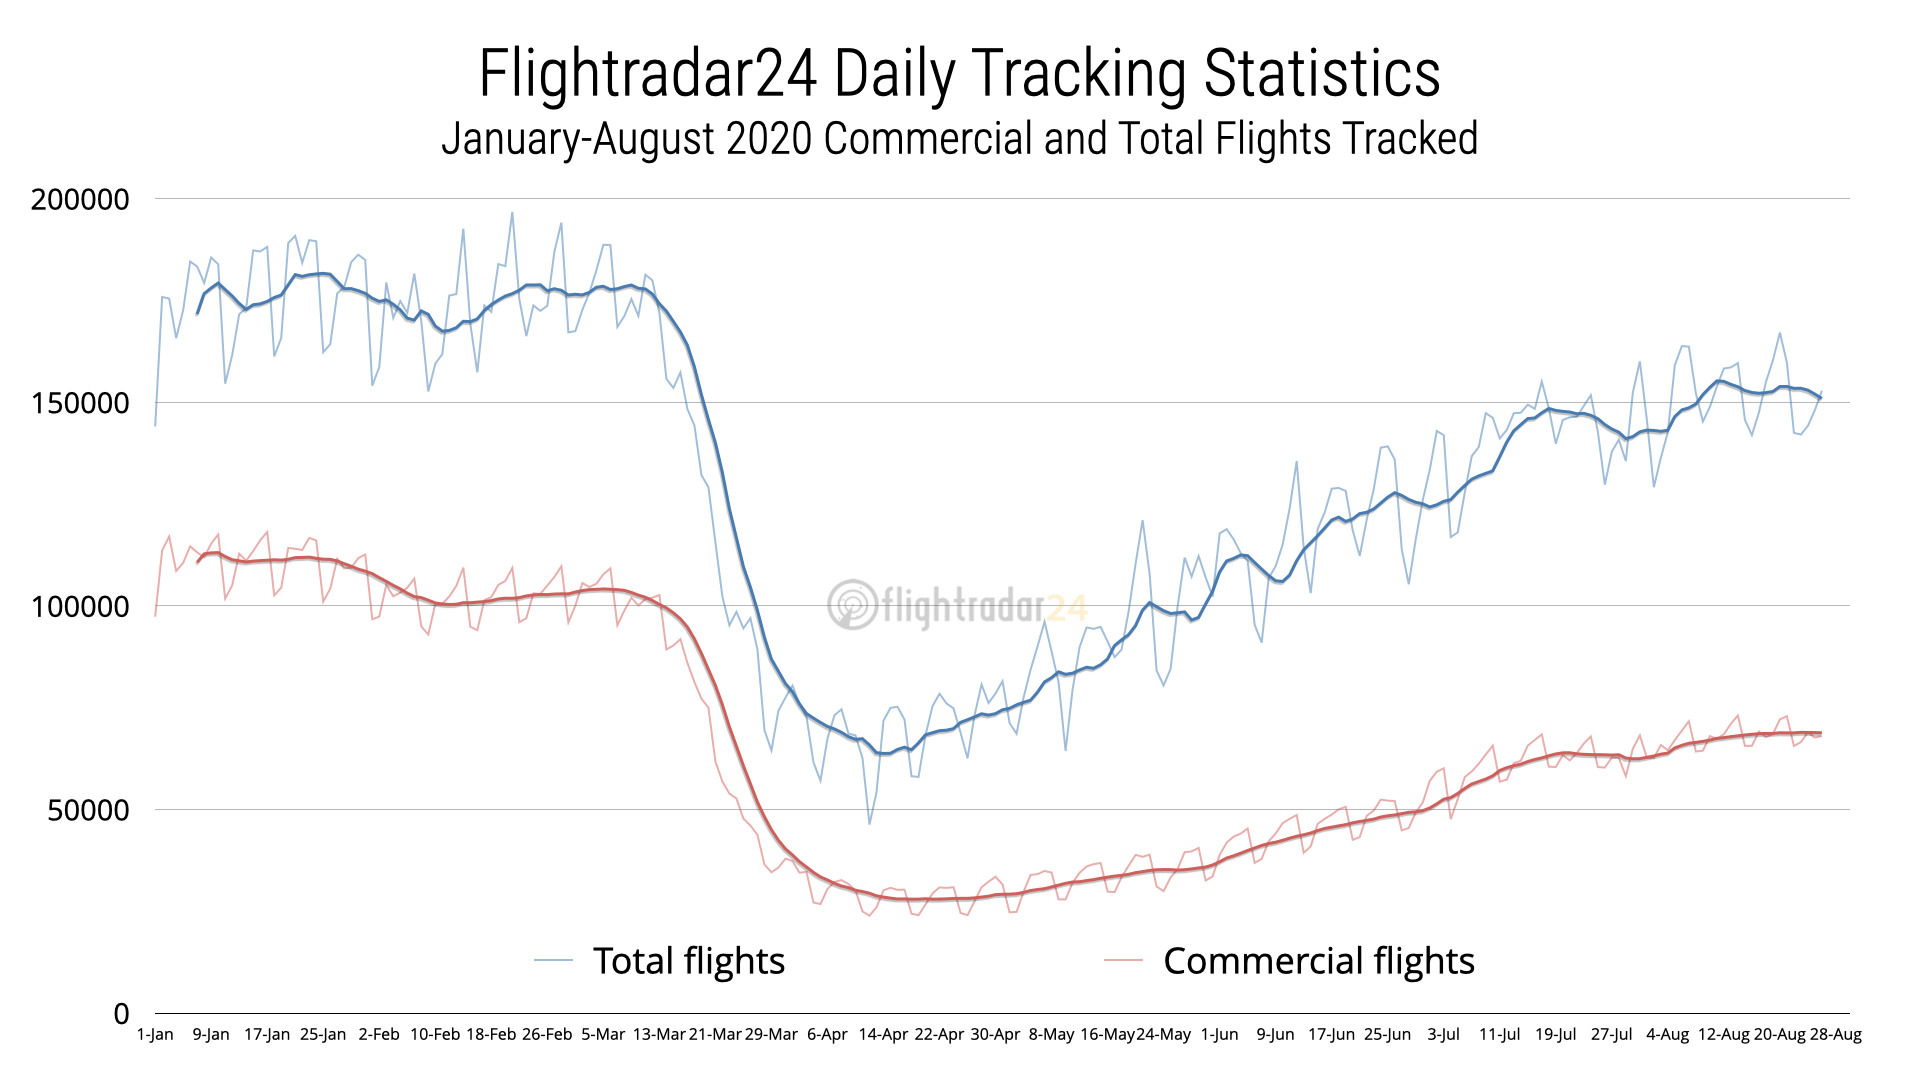 Daily flight tracking statistics